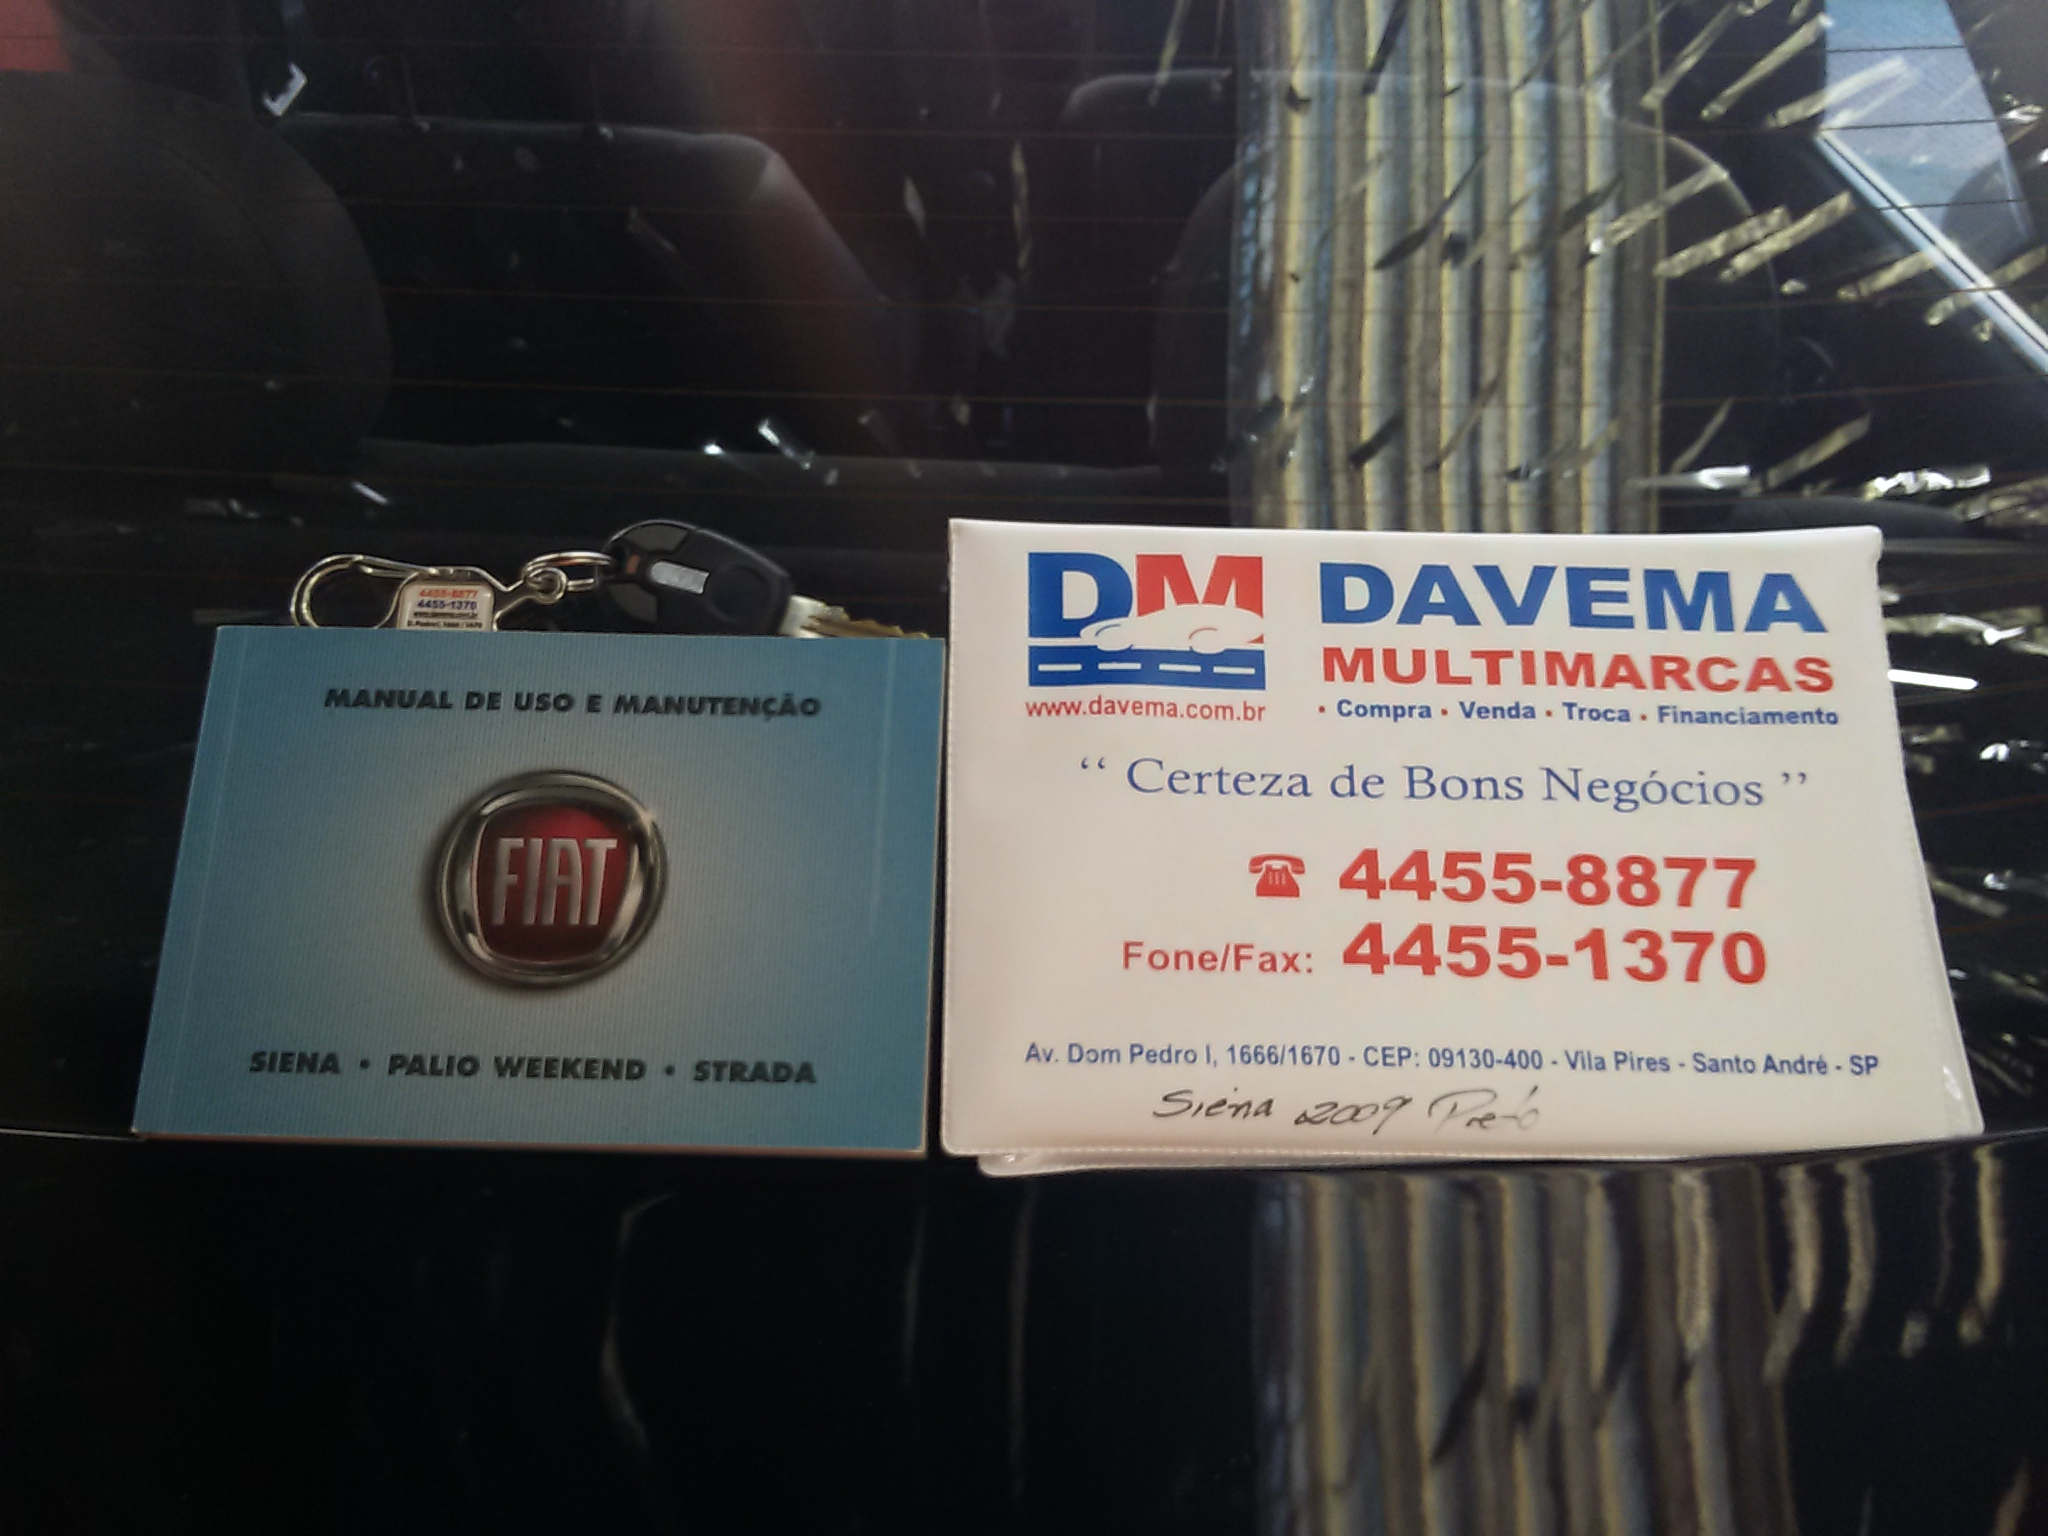 davema multimarcas